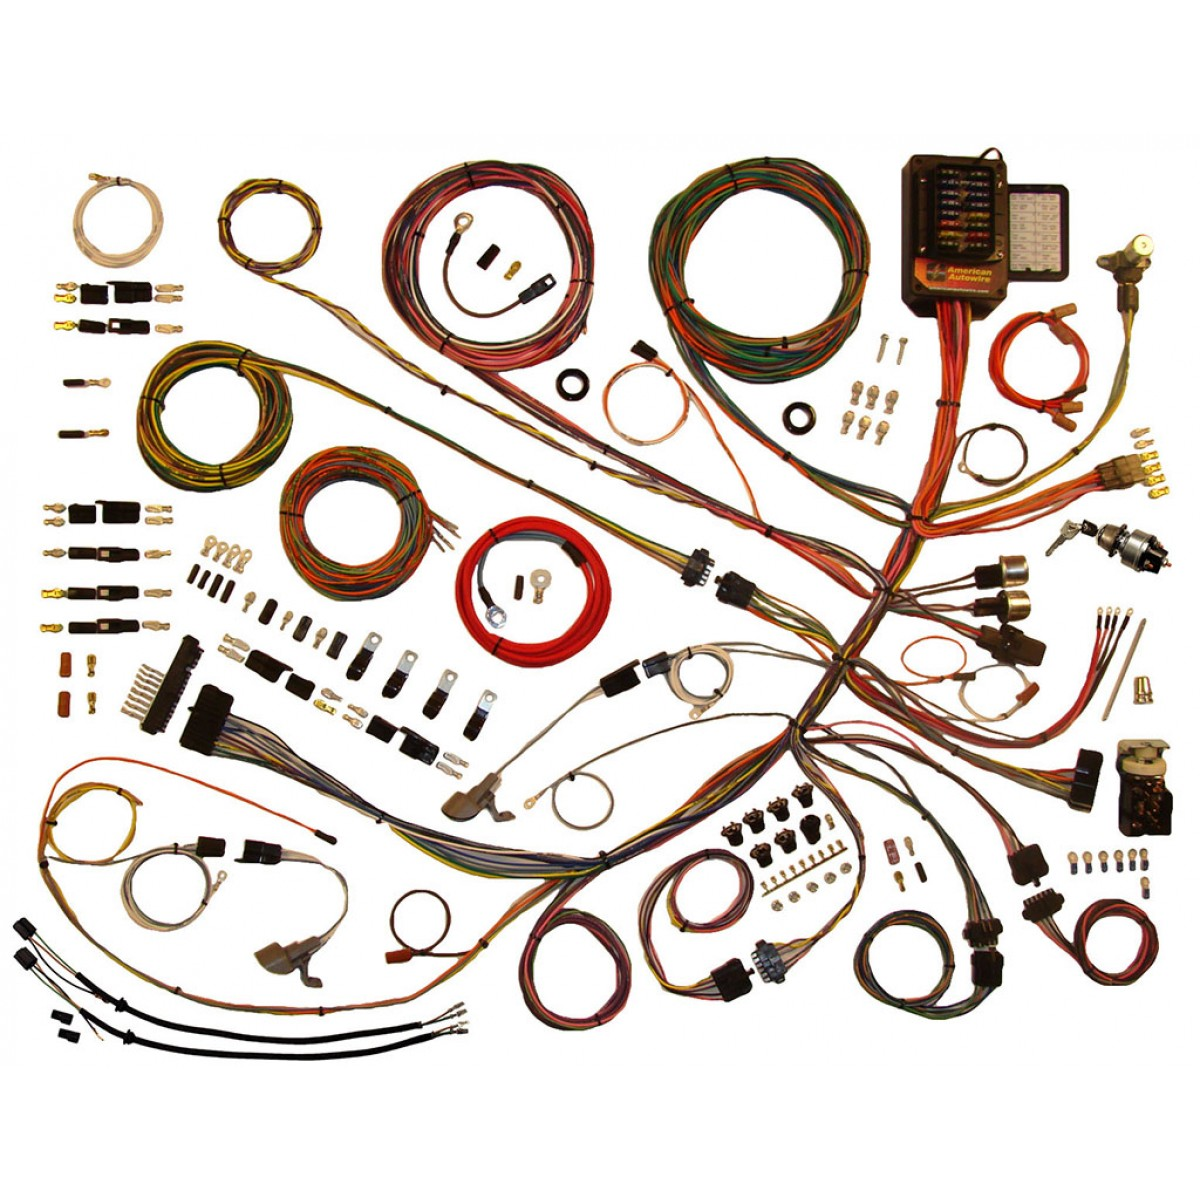 complete wiring harness kit 1953 1956 ford f100 part 510303 ford truck wiring harness f100 1953 1956 ford f100 wiring harness complete wiring harness kit ford wiring harness at aneh.co